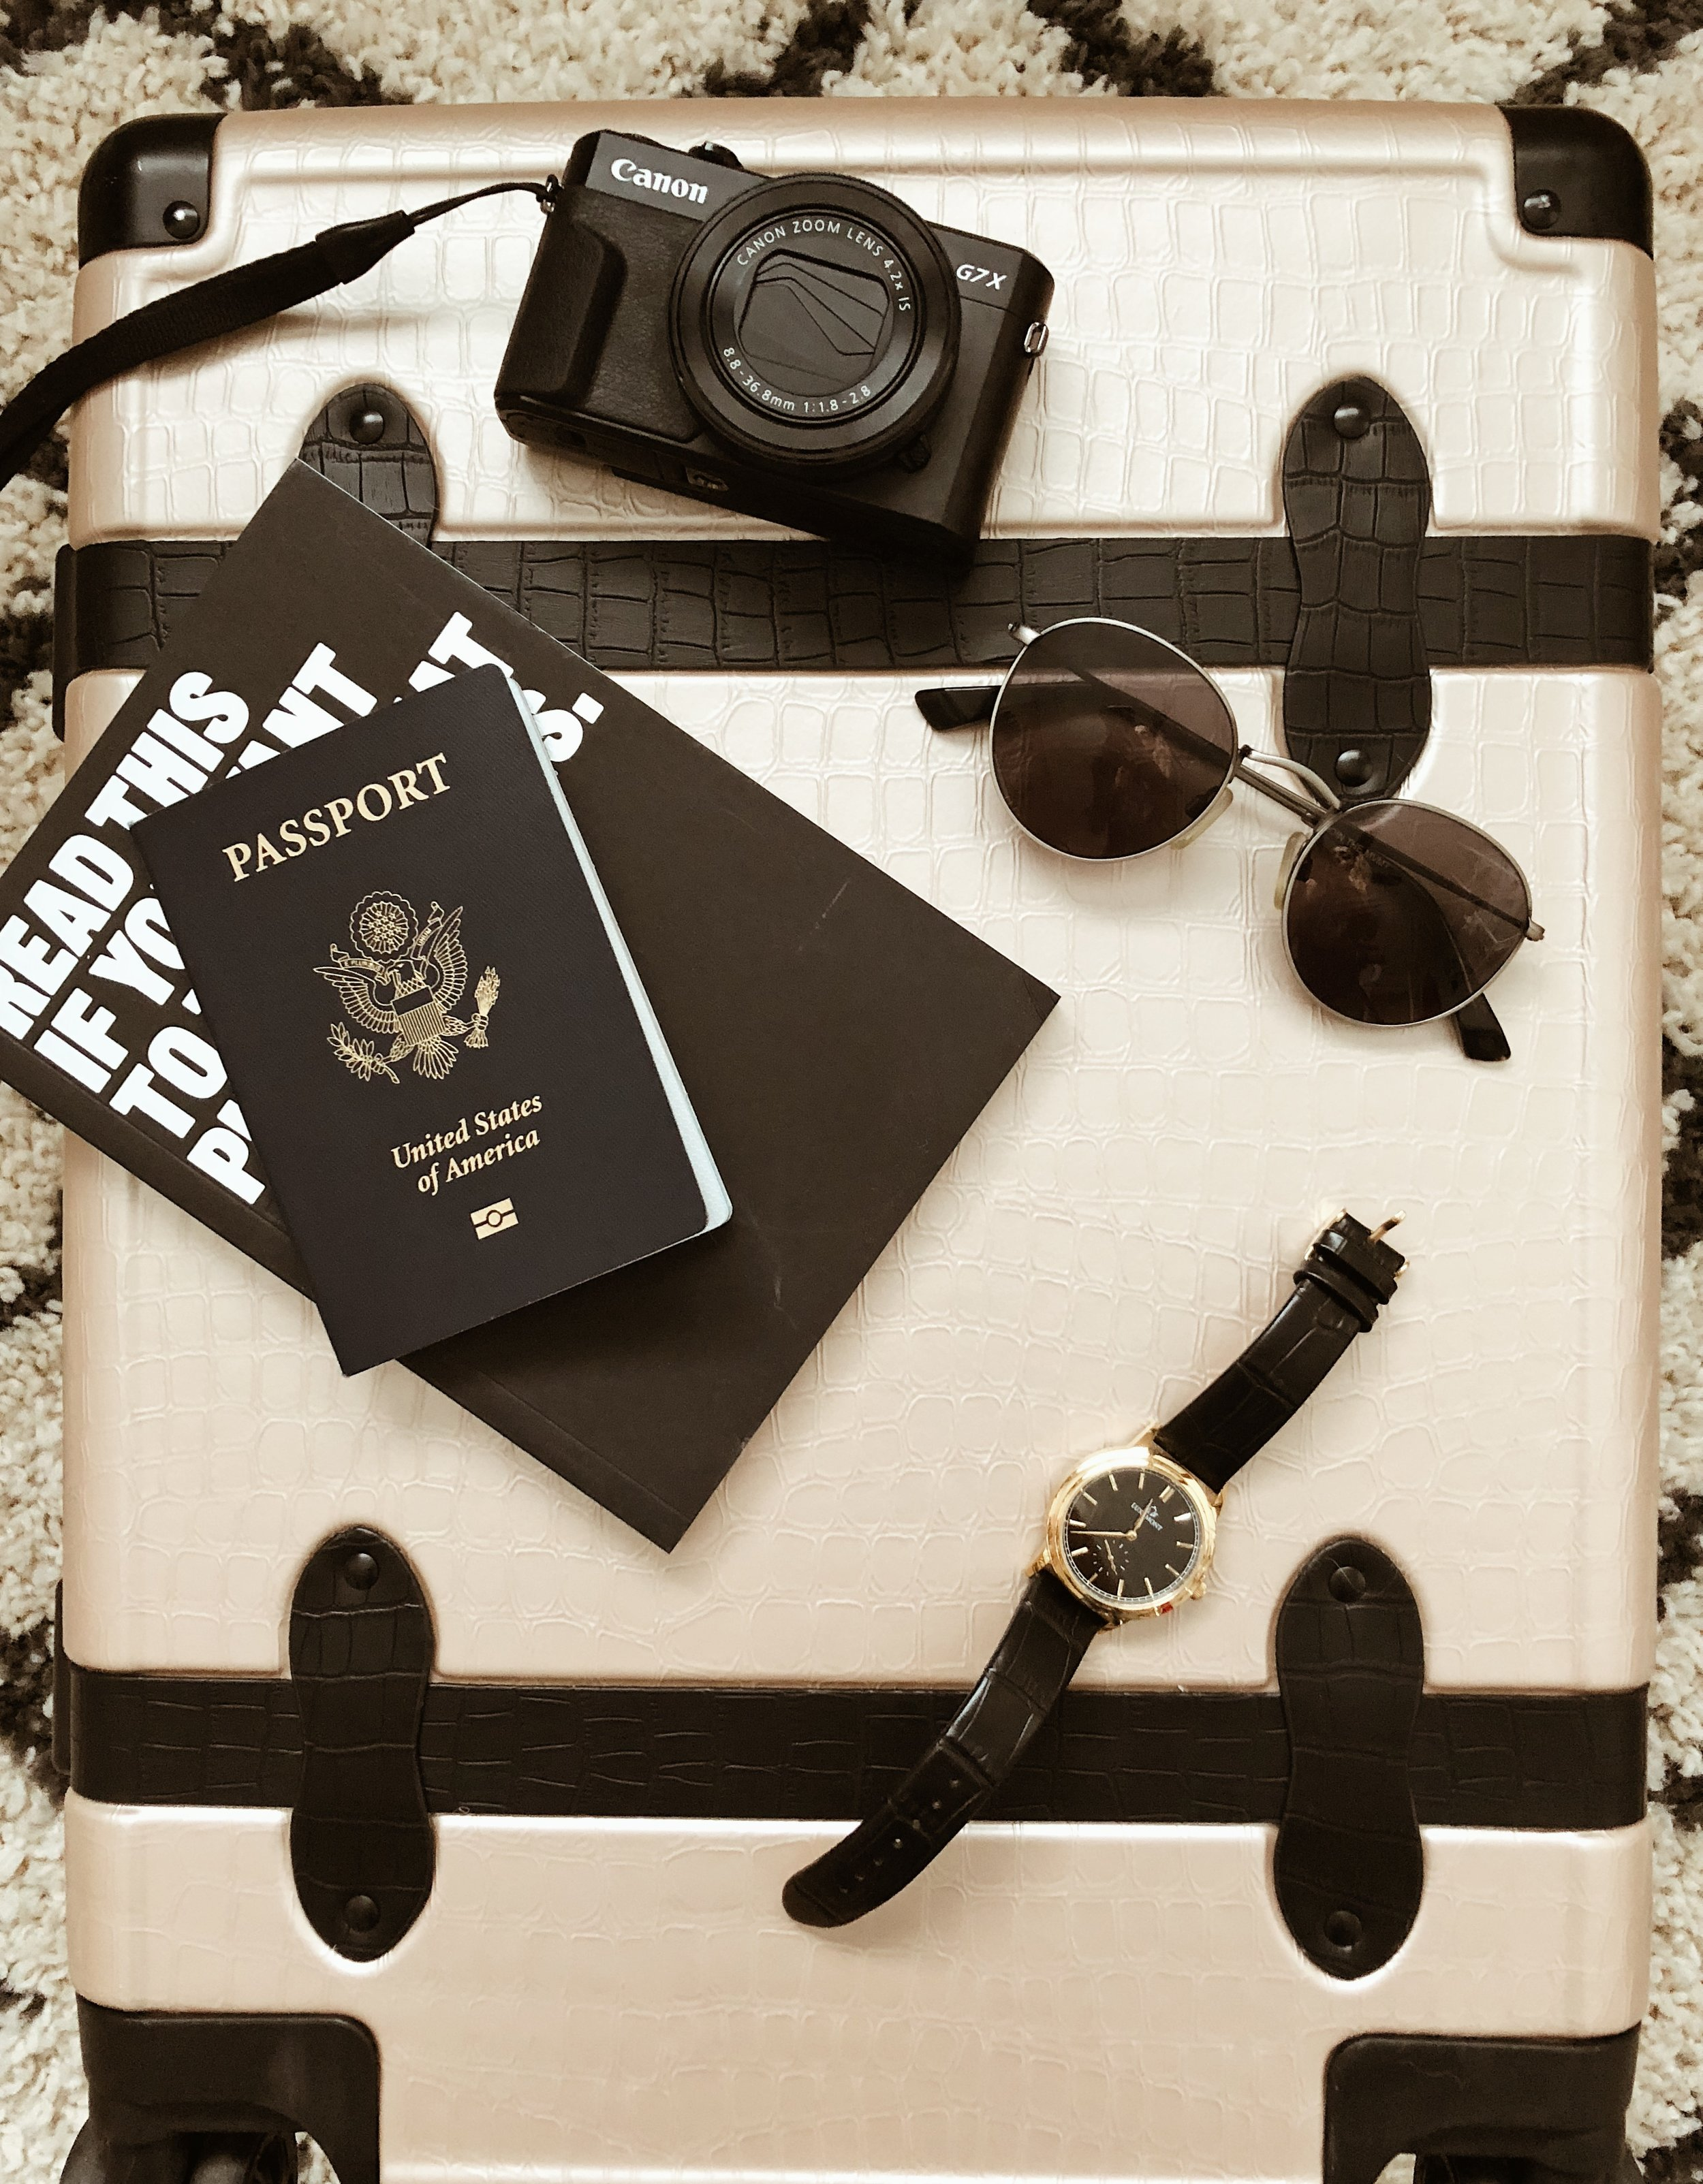 @thestyleseed's travel essentials on CALPAK's Trnk luggage.